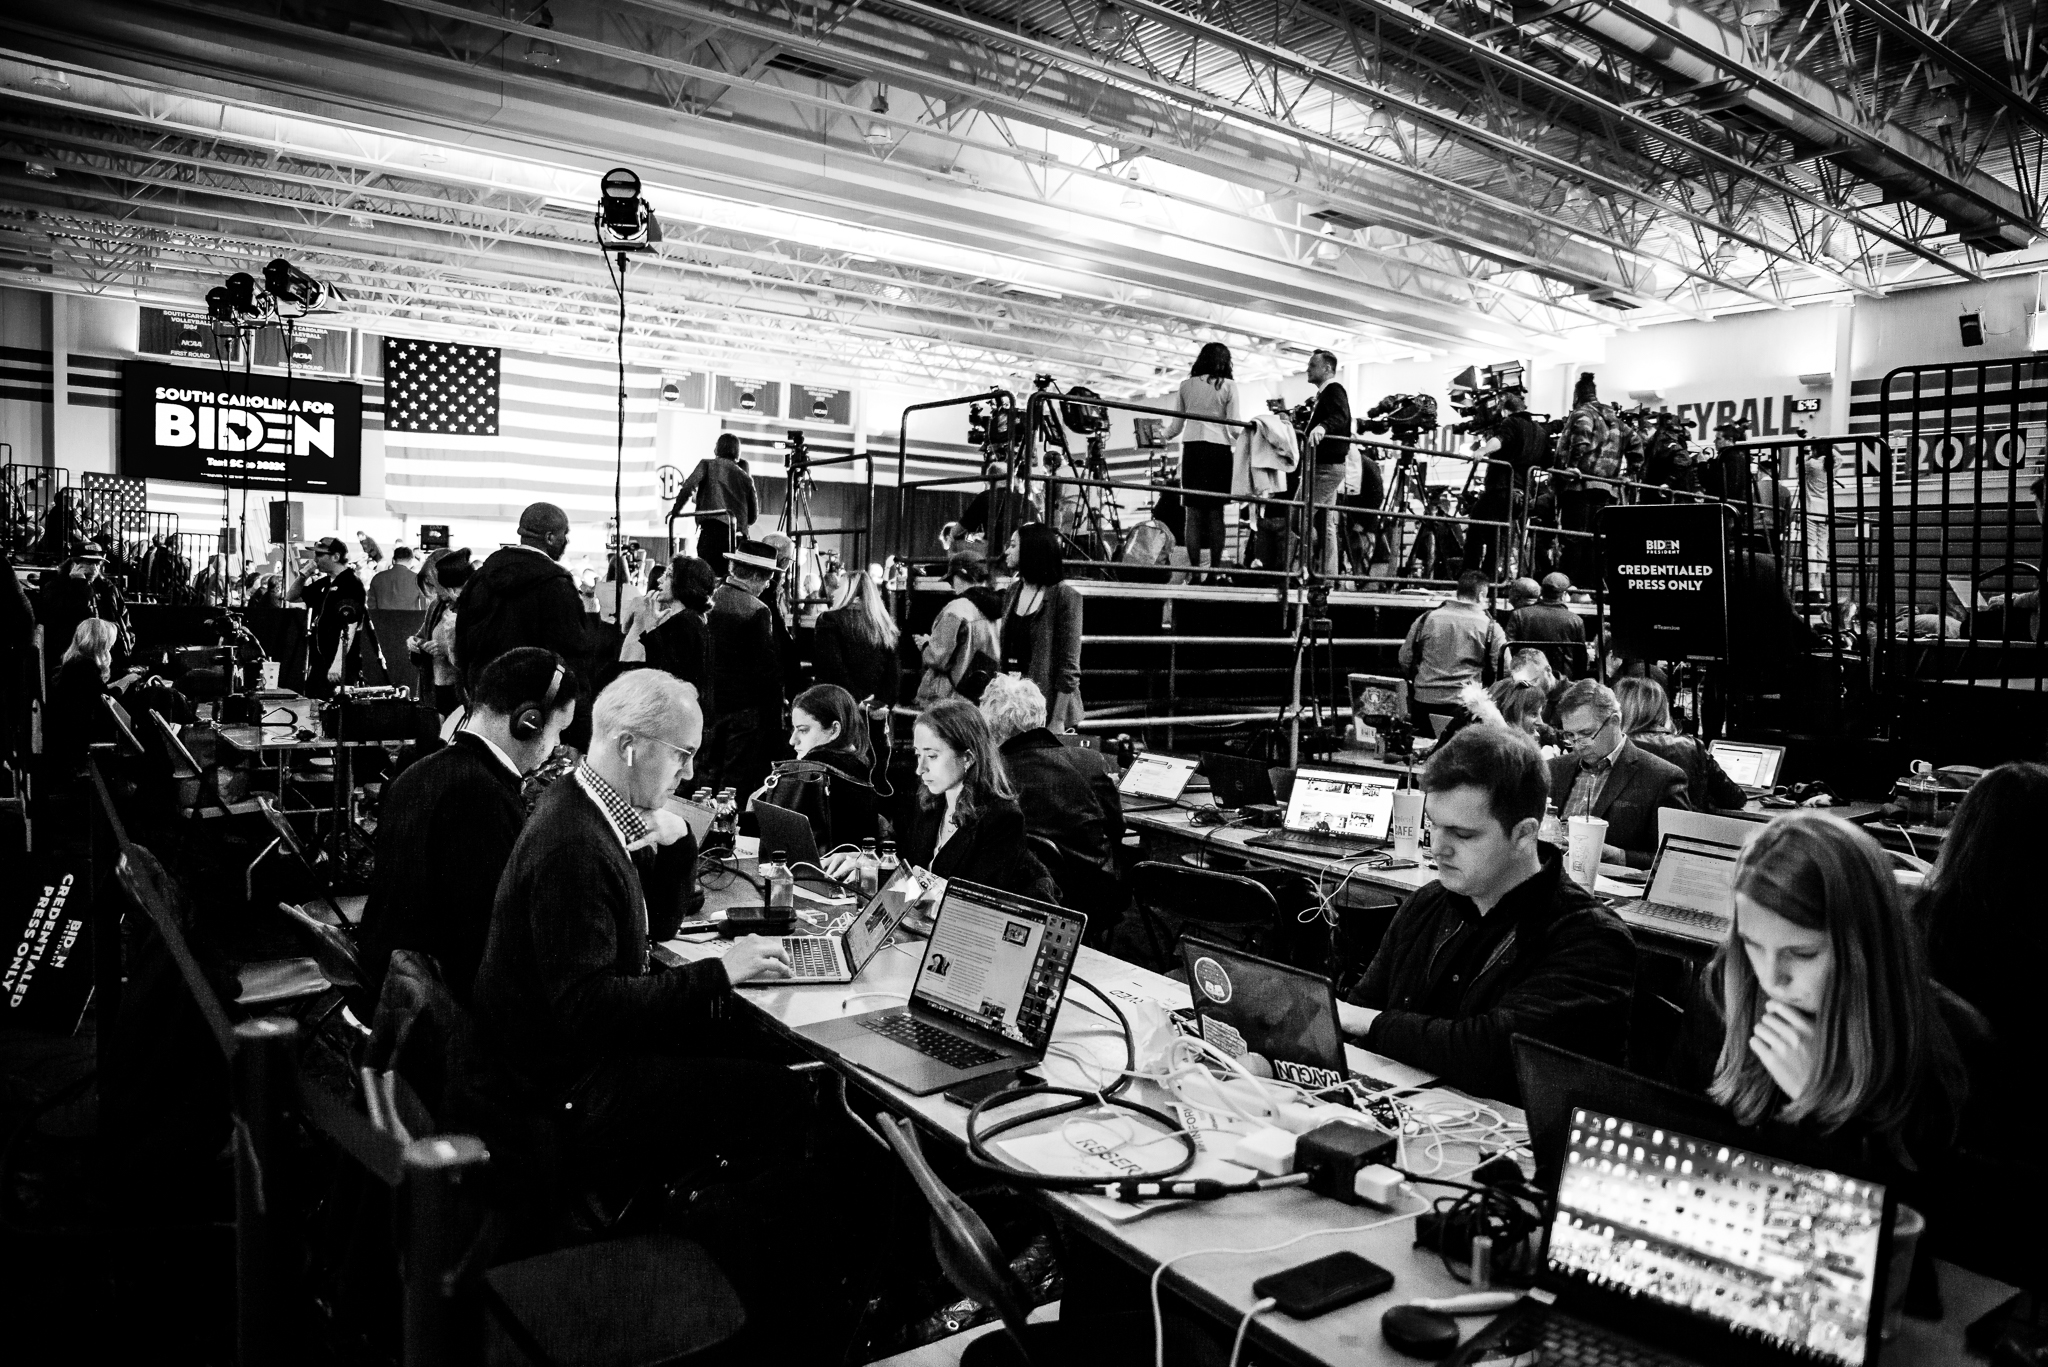 Reporters file their stories at a Joe Biden victory rally on primary night in Columbia South Carolina. February 29, 2020. Photo: Lance Monotone.